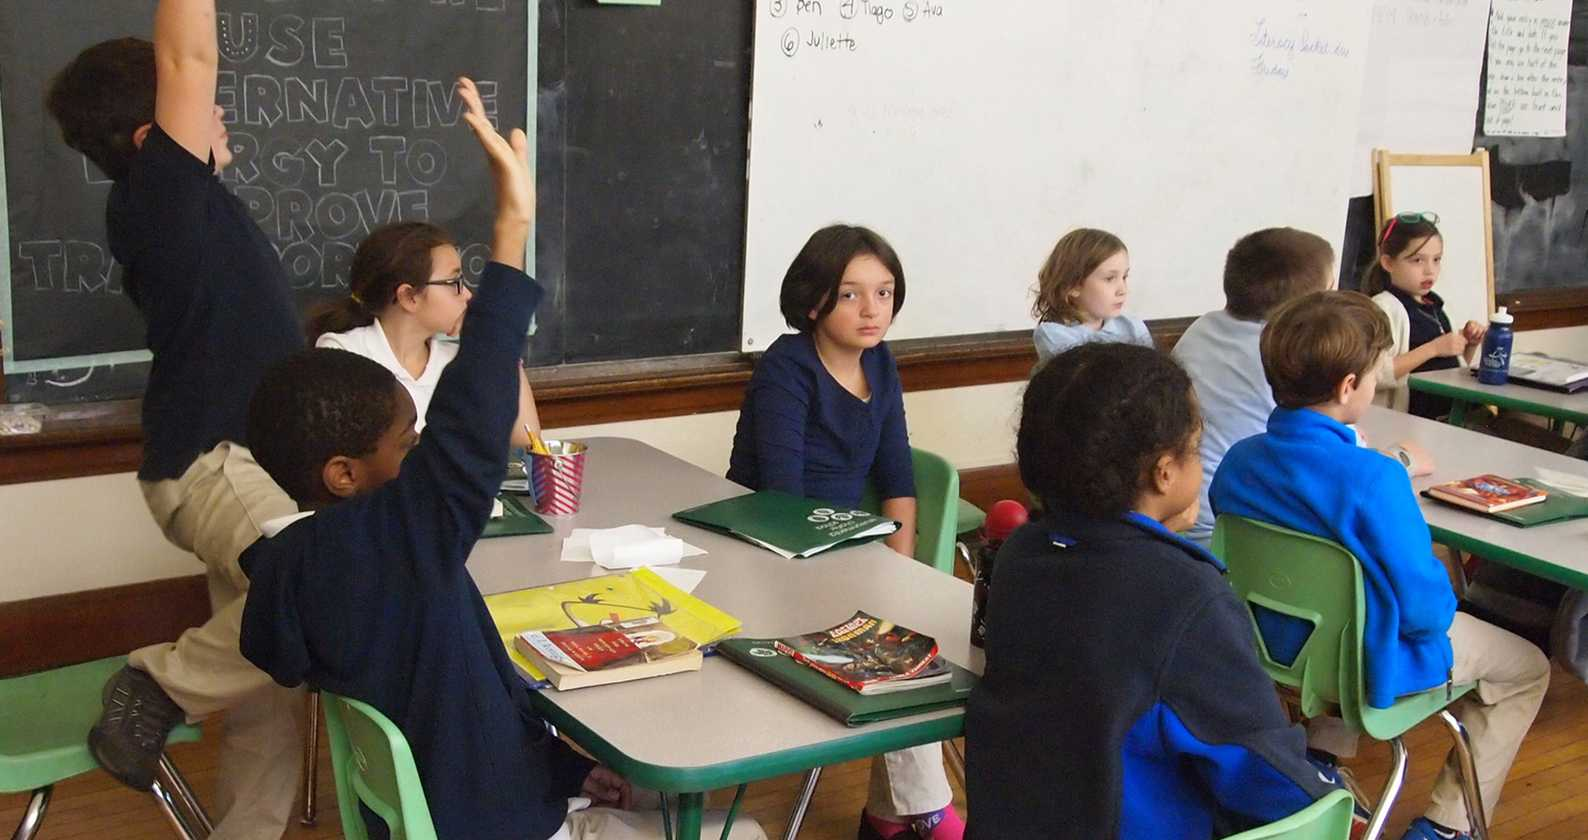 New Jersey public school teachers are underpaid, not overpaid